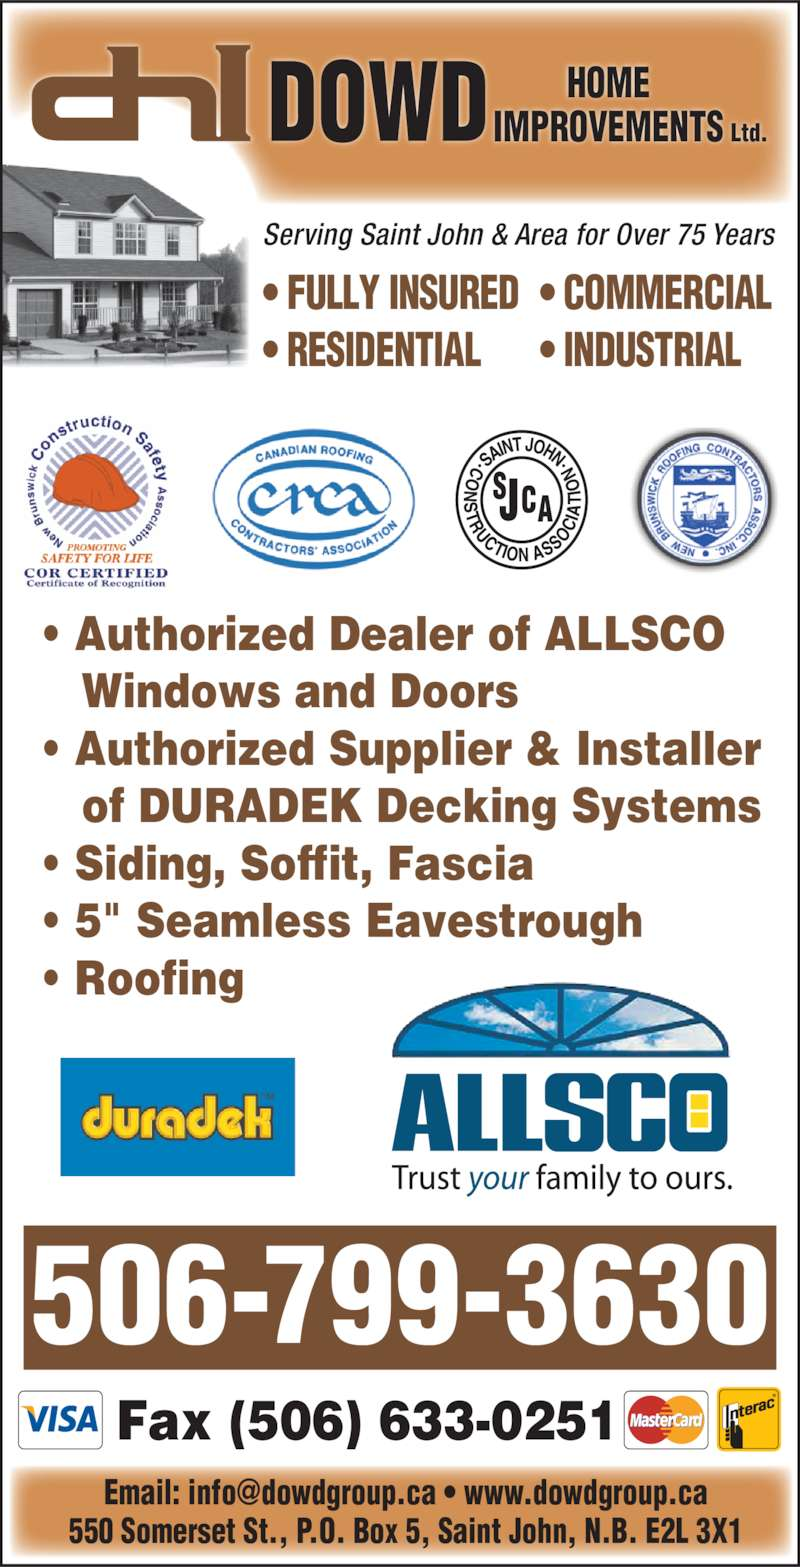 "Dowd Roofing Inc (506-632-0022) - Display Ad - • FULLY INSURED • RESIDENTIAL • COMMERCIAL • INDUSTRIAL Serving Saint John & Area for Over 75 Years 506-799-3630 Fax (506) 633-0251 • Authorized Dealer of ALLSCO    Windows and Doors • Authorized Supplier & Installer    of DURADEK Decking Systems • Siding, Soffit, Fascia • 5"" Seamless Eavestrough • Roofing 550 Somerset St., P.O. Box 5, Saint John, N.B. E2L 3X1 Ltd. HOME IMPROVEMENTSDOWD"